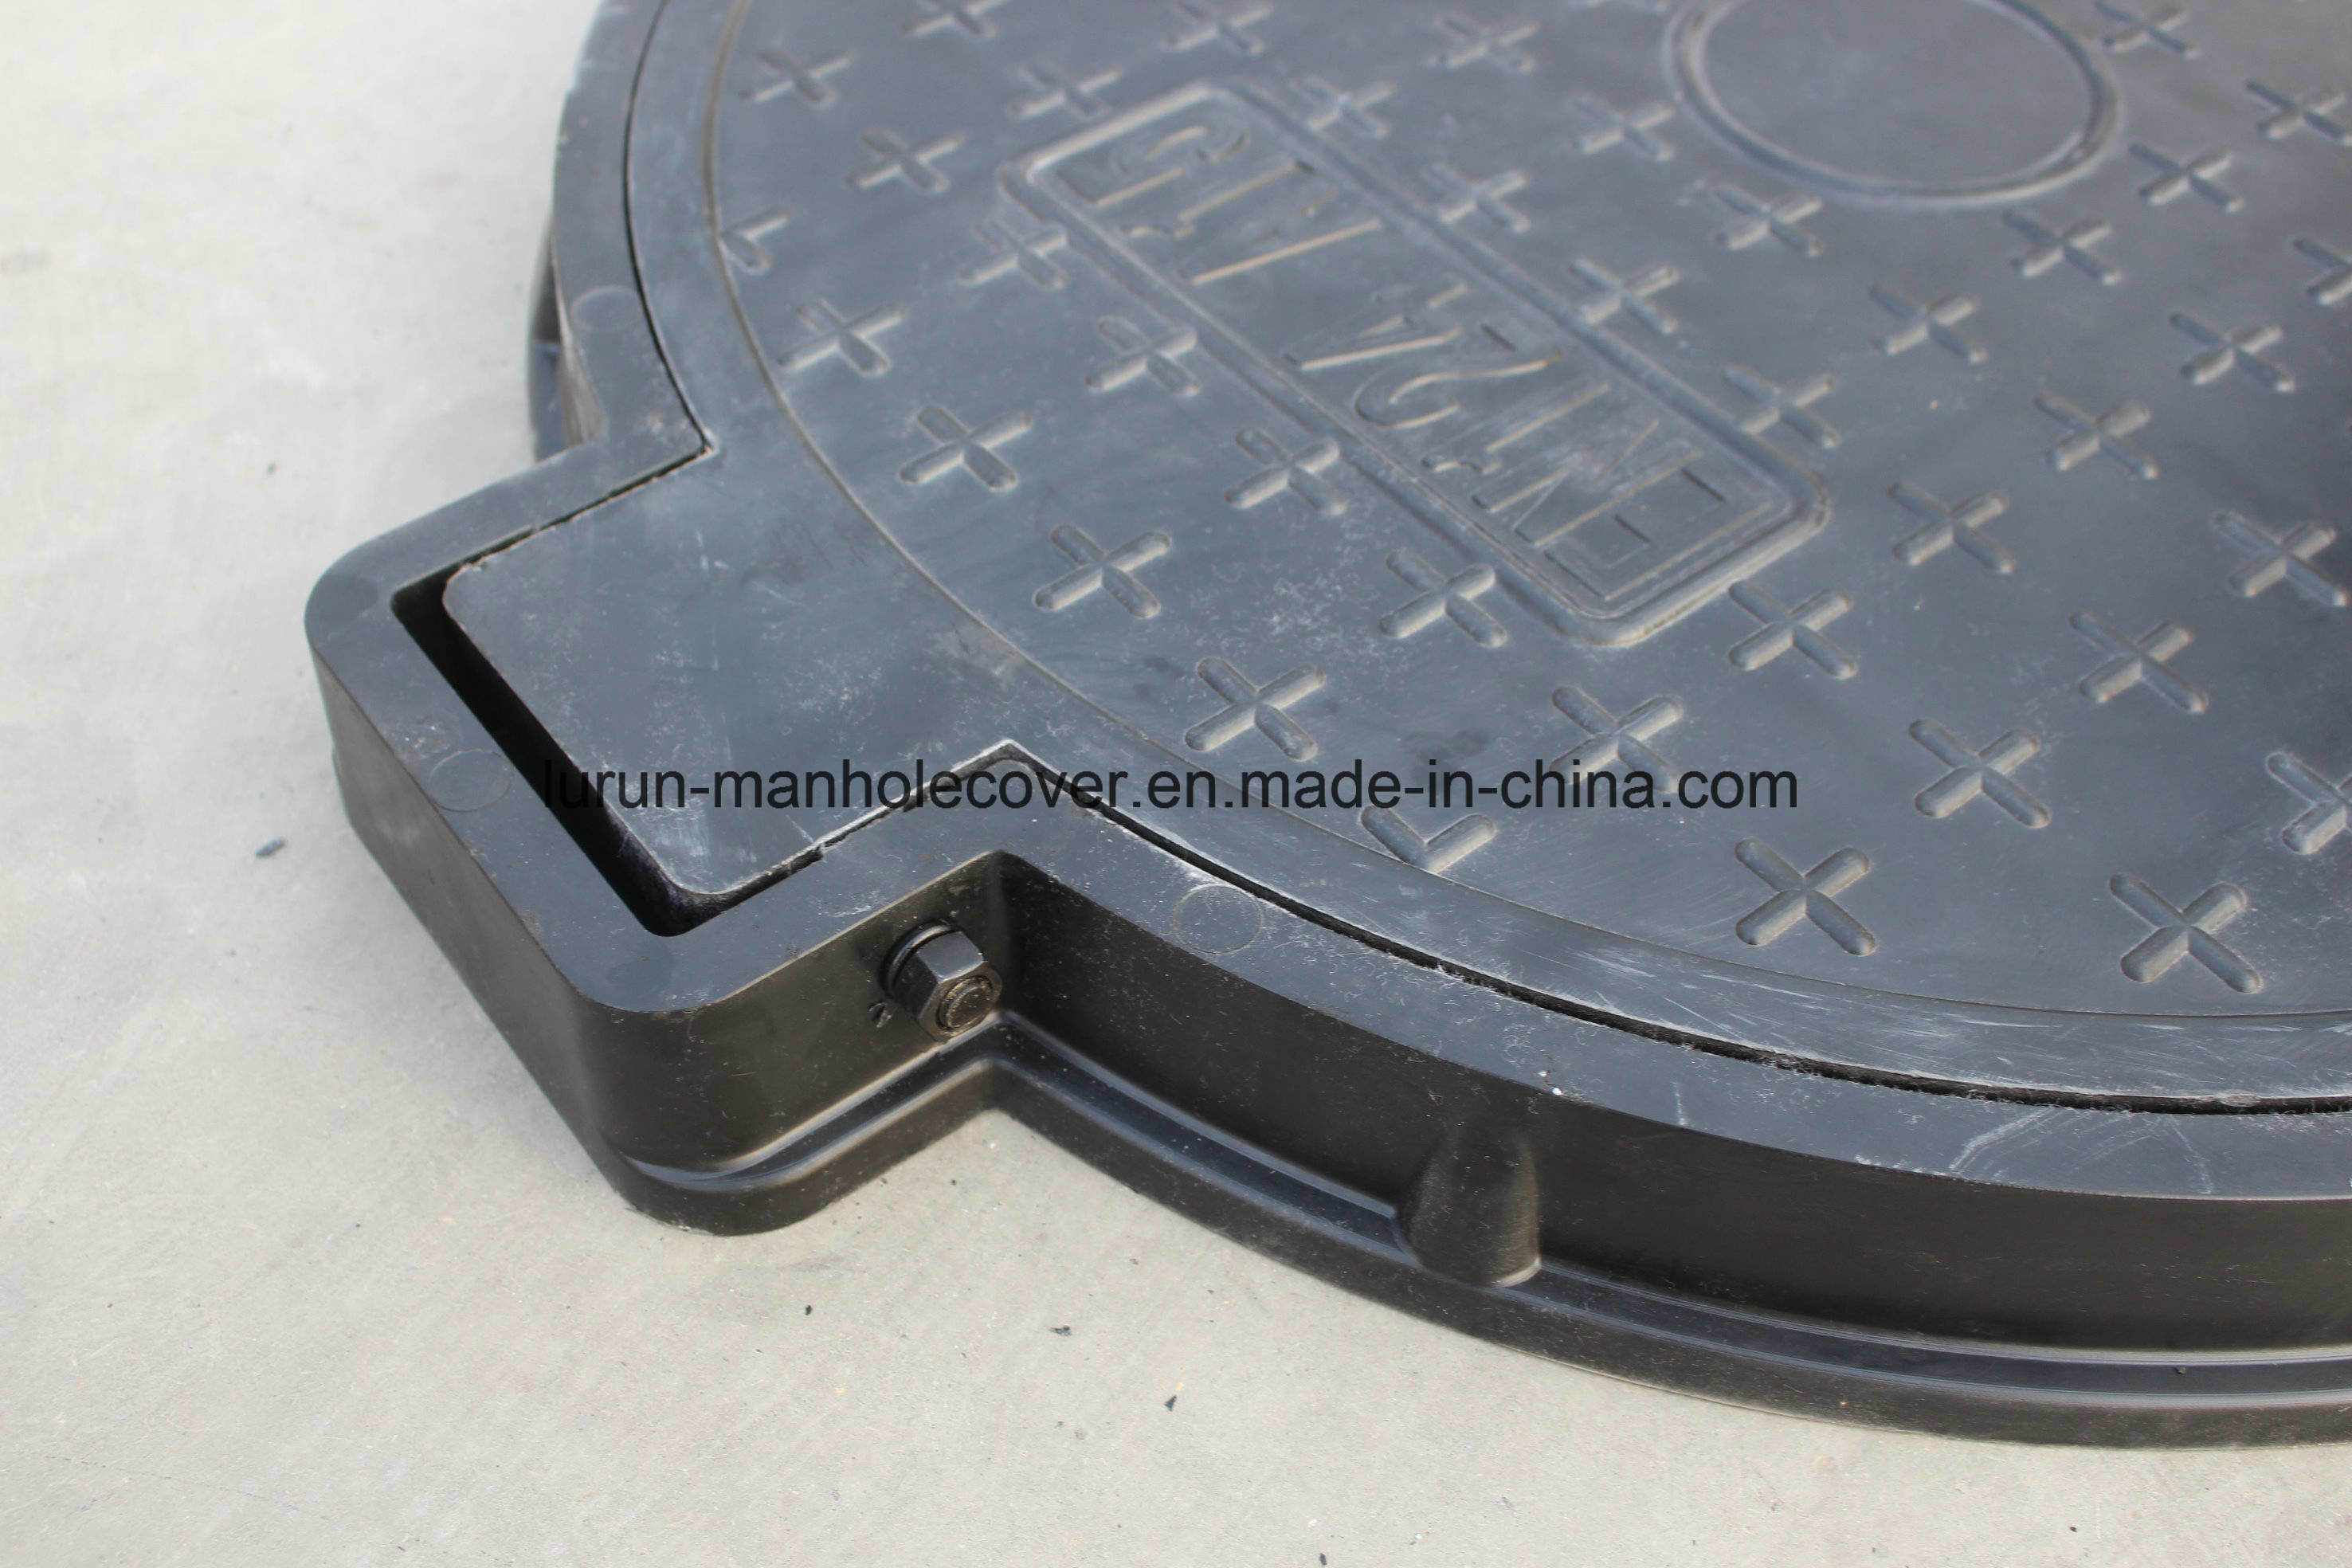 En124 Composite Light Weight Manhole Covers with Long Service Life